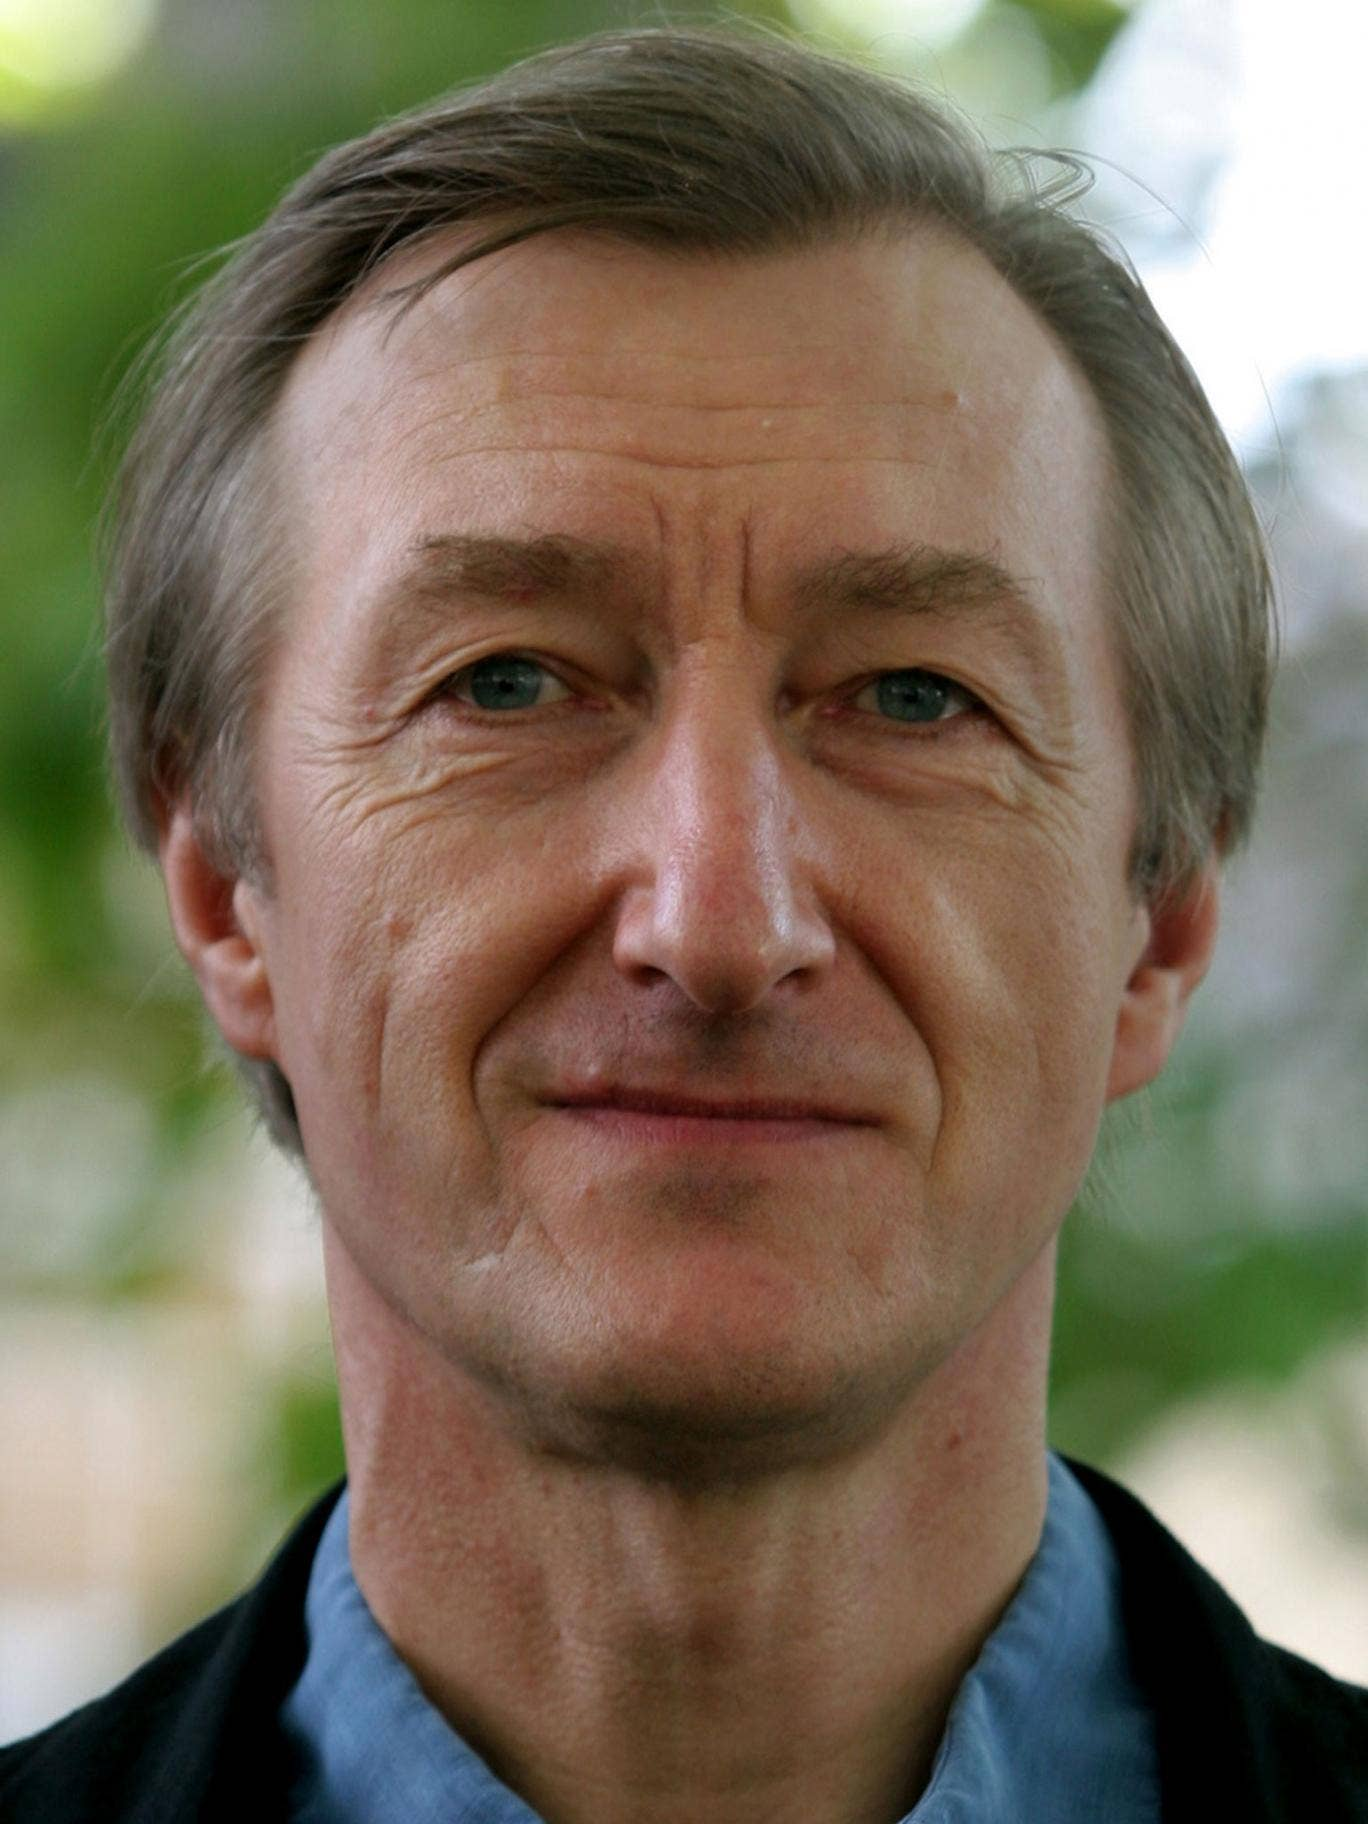 It is better to have loved and lost, decides Julian Barnes. But his memoir still pulses with raw pain